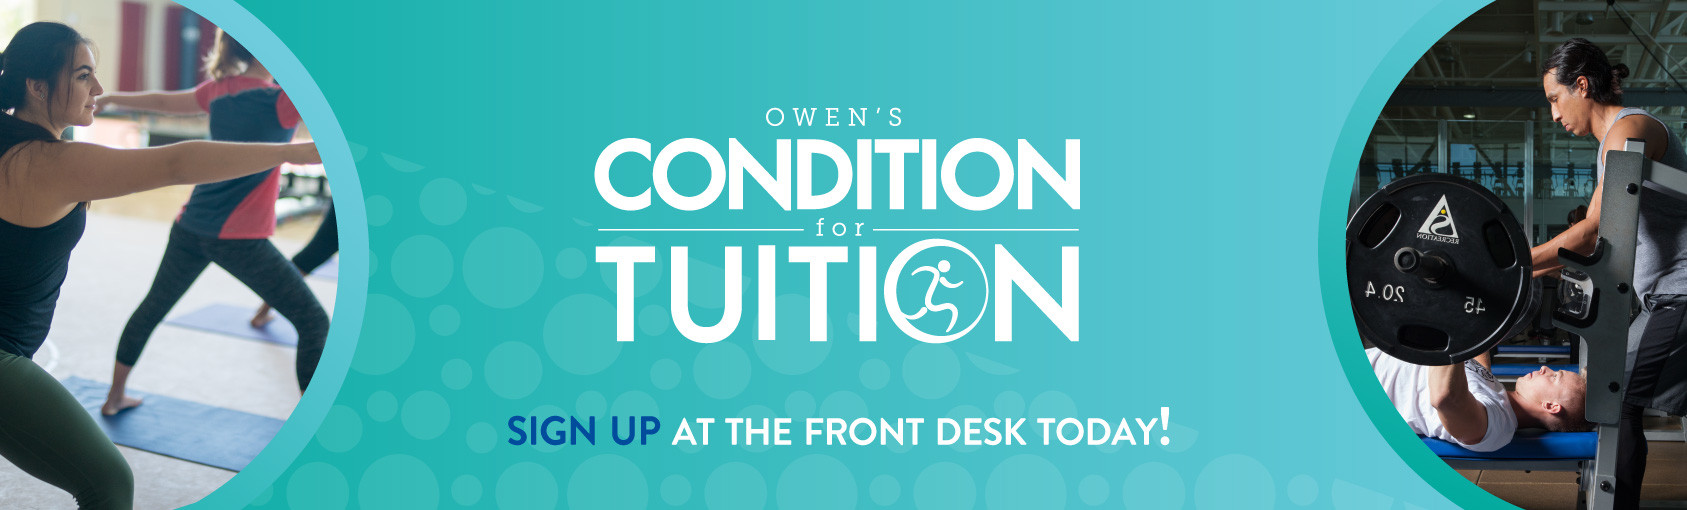 Sign-up for the Owen's Challenge Now Bannner